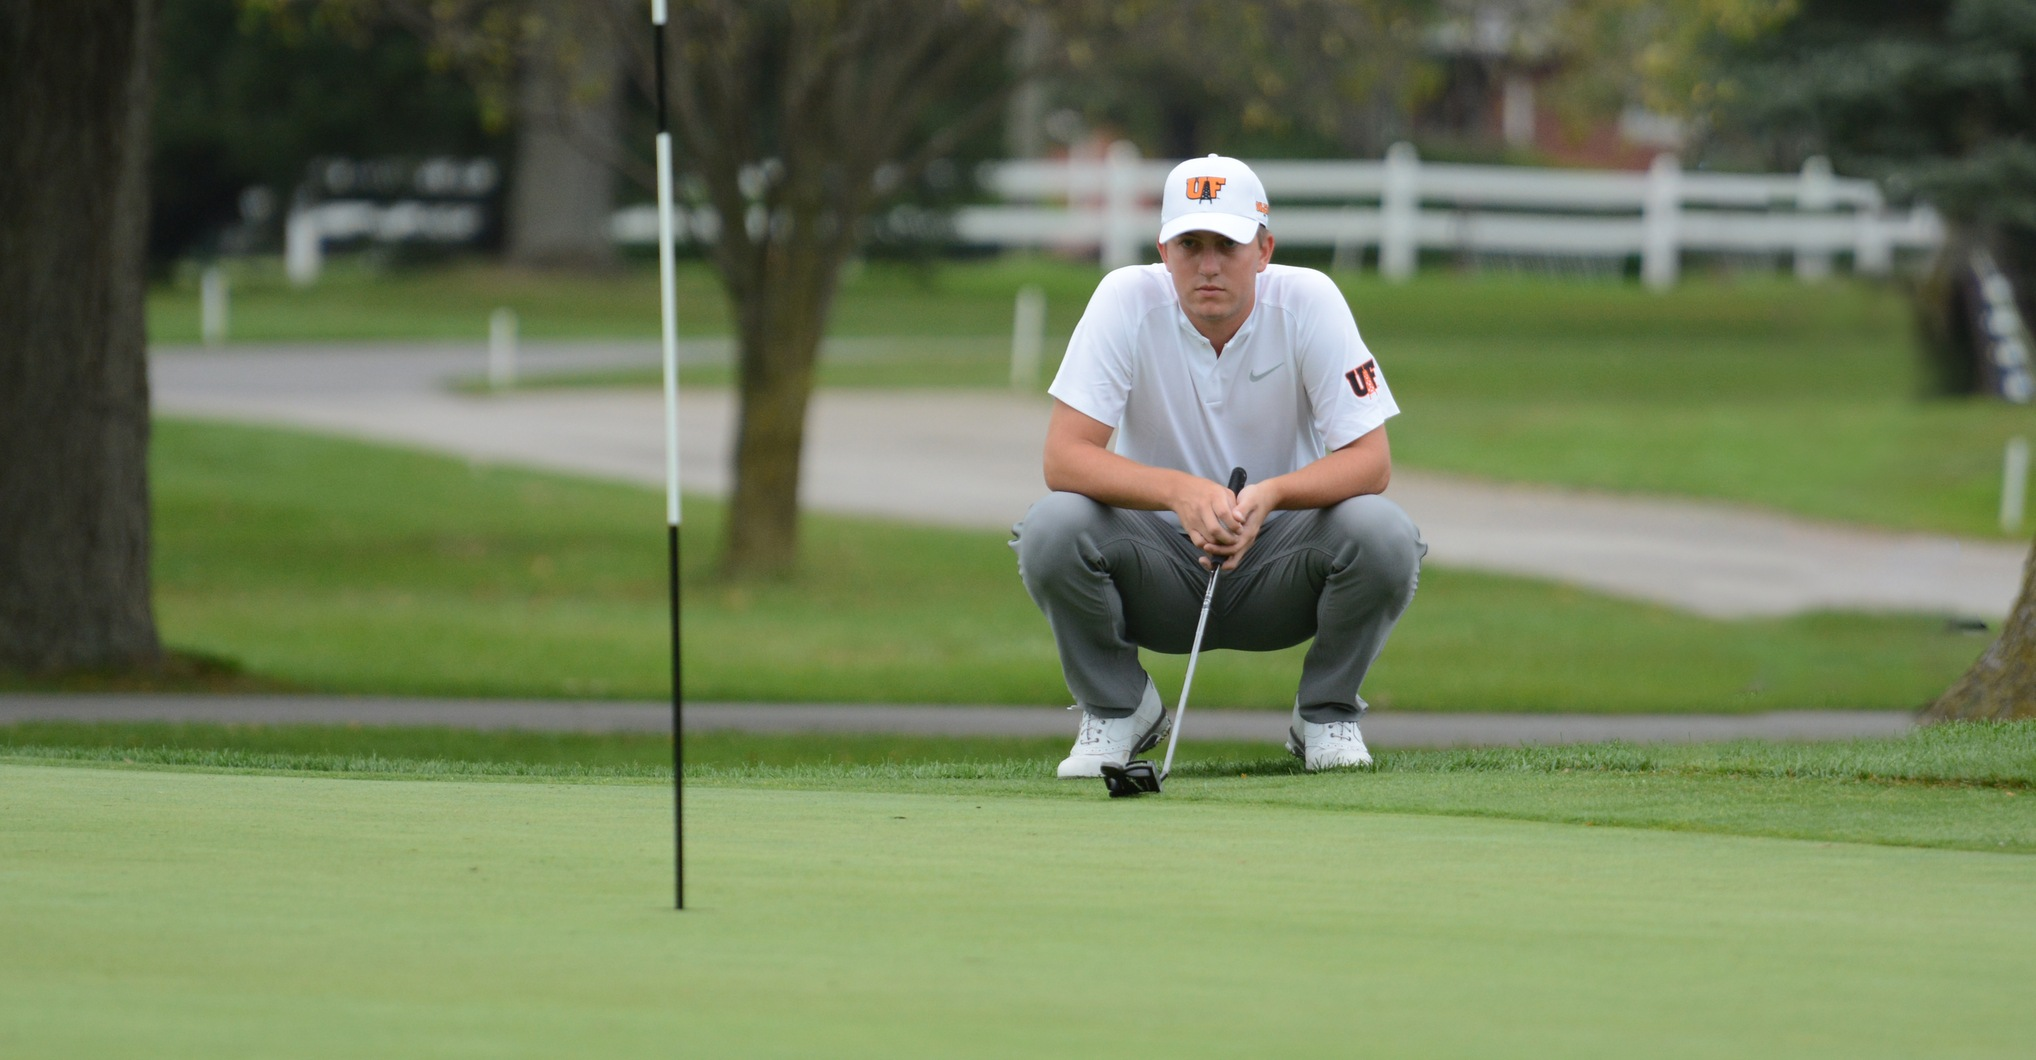 Findlay Moves Up to Fourth at Greyhound Invitational